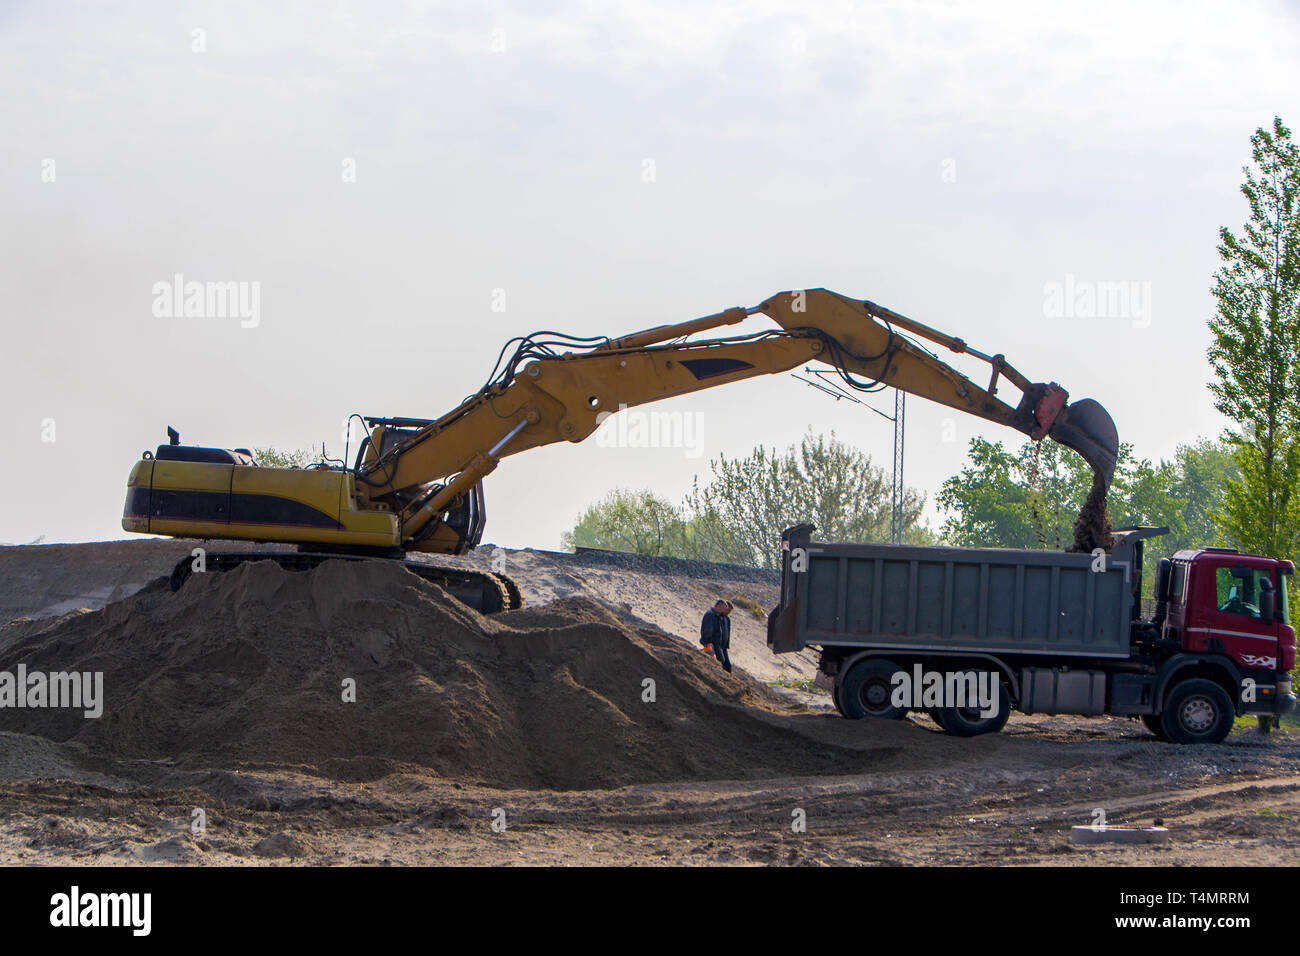 Excavator loading sand in the truck on the construction of access roads for the bridge - Stock Image